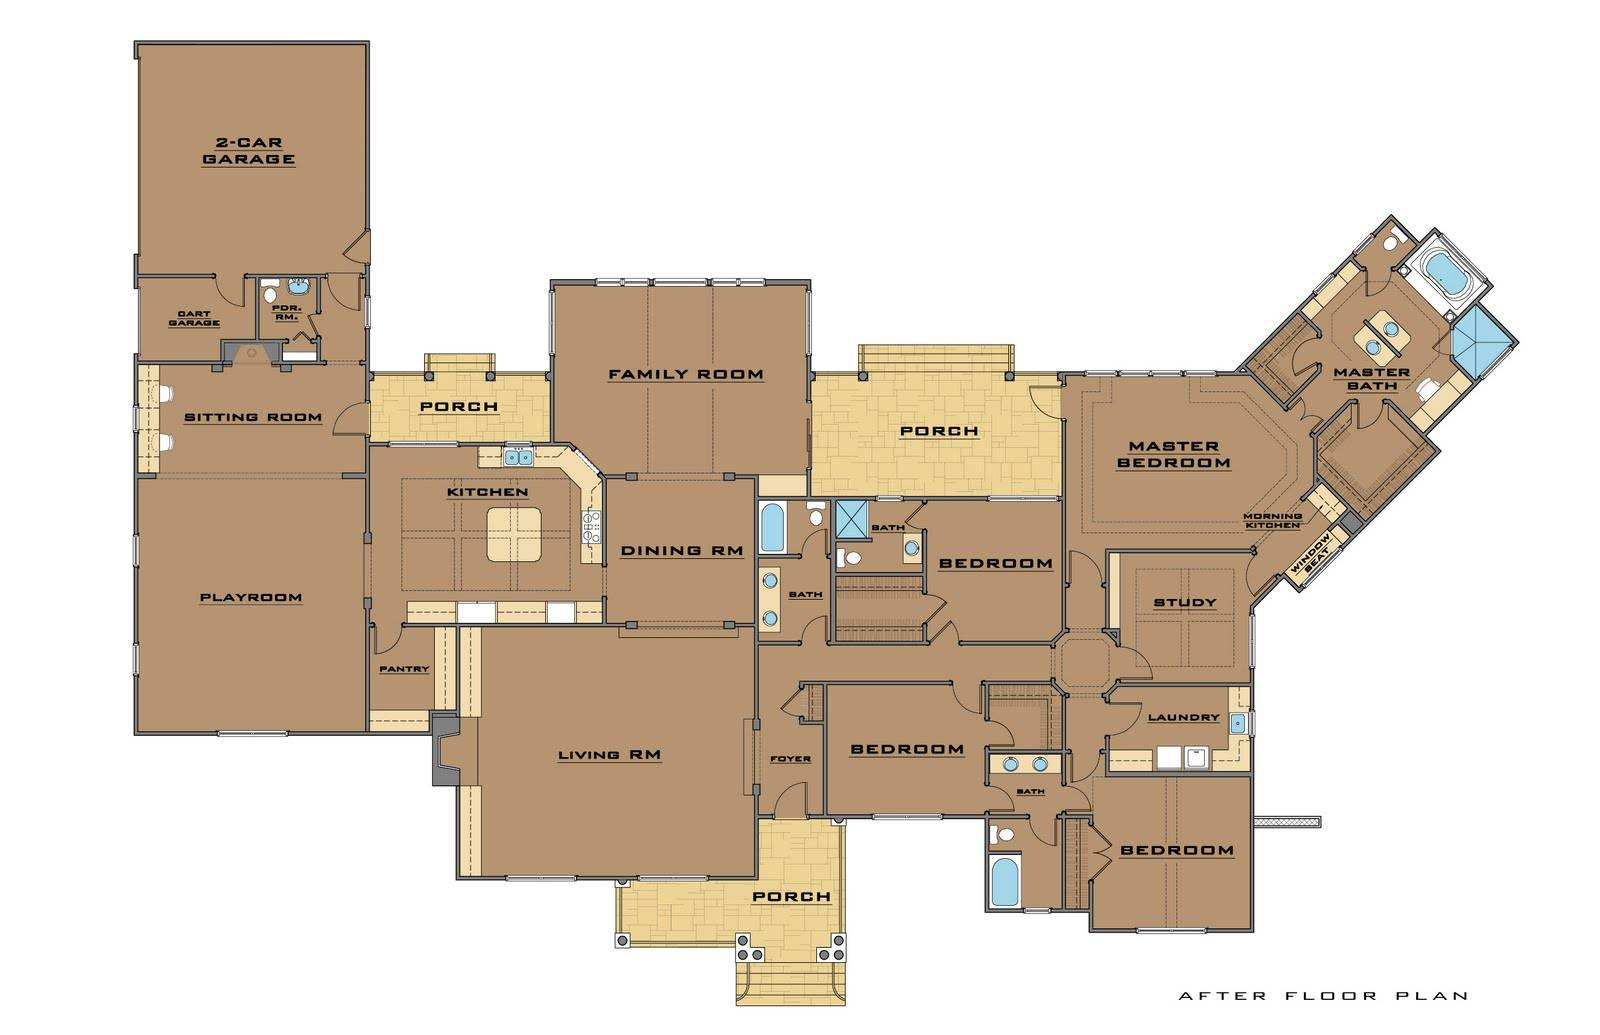 24 Surprisingly Single Story House Plans With 2 Master Suites. 24 Surprisingly Single Story House Plans With 2 Master Suites